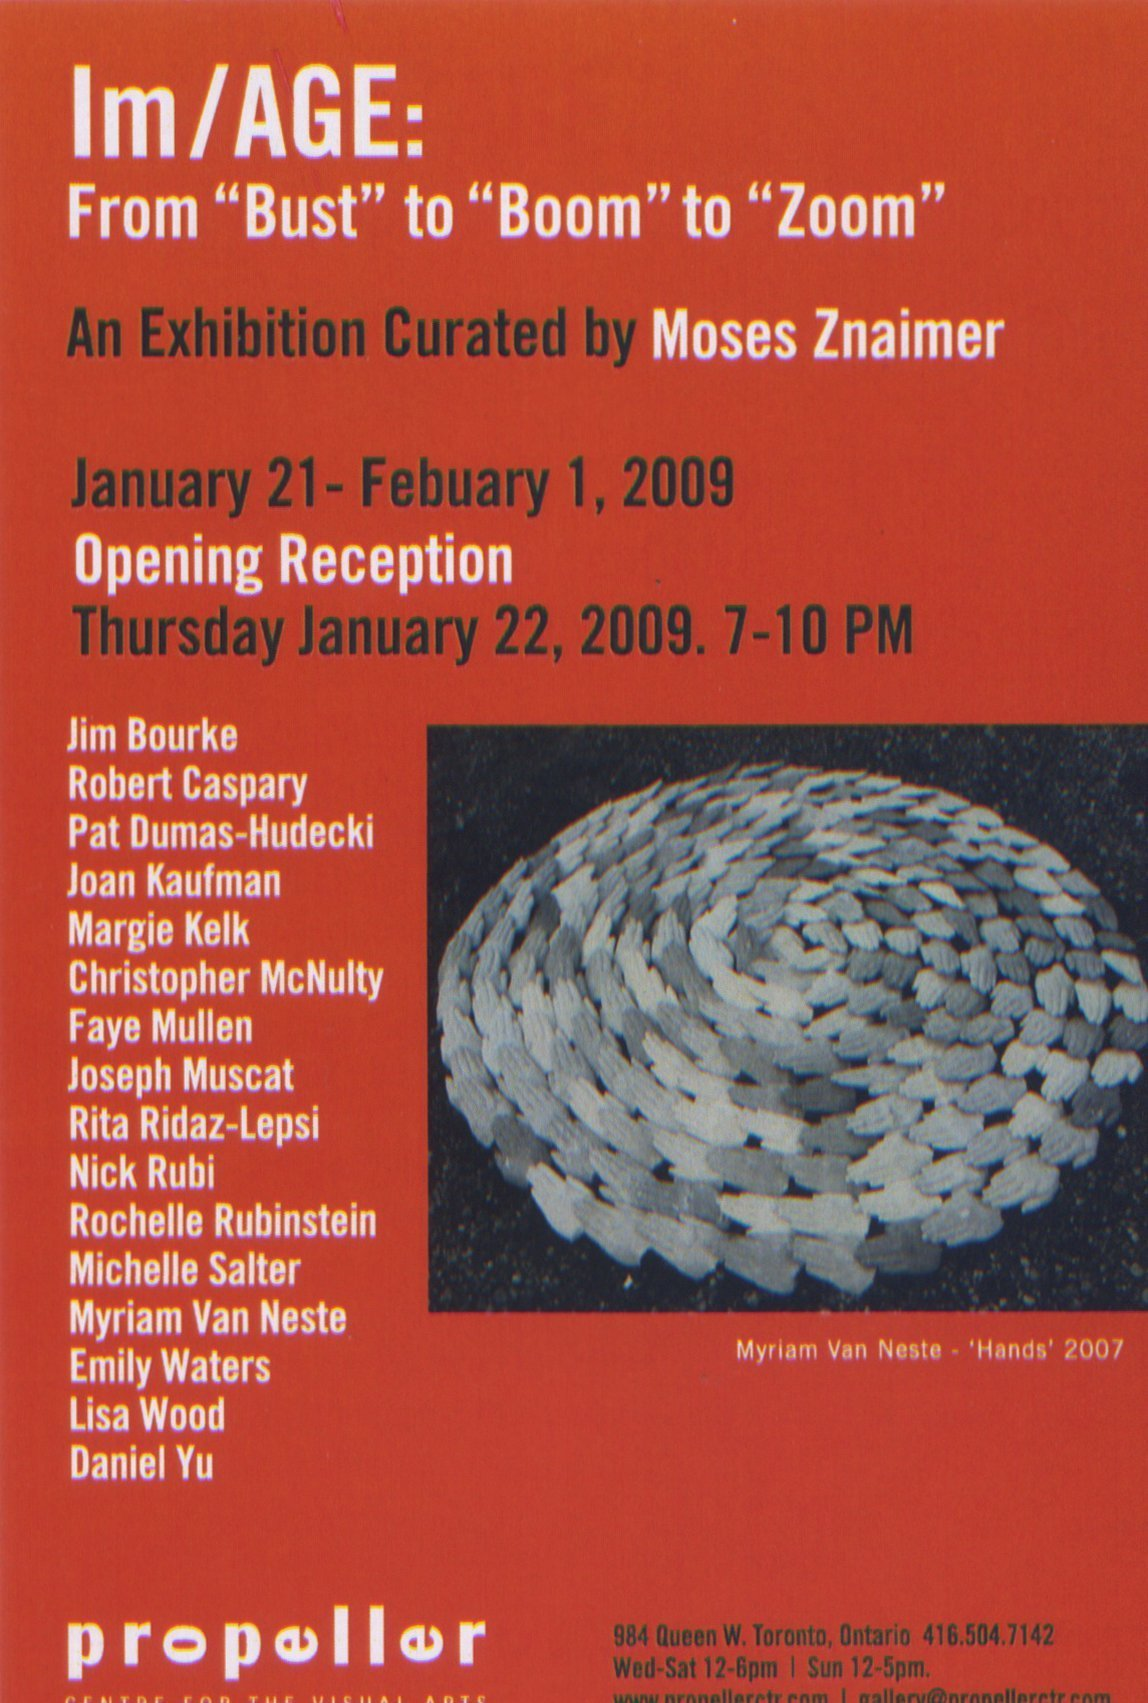 """Im/AGE: From """"Bust"""" to """"Boom"""" to """"Zoom"""" 